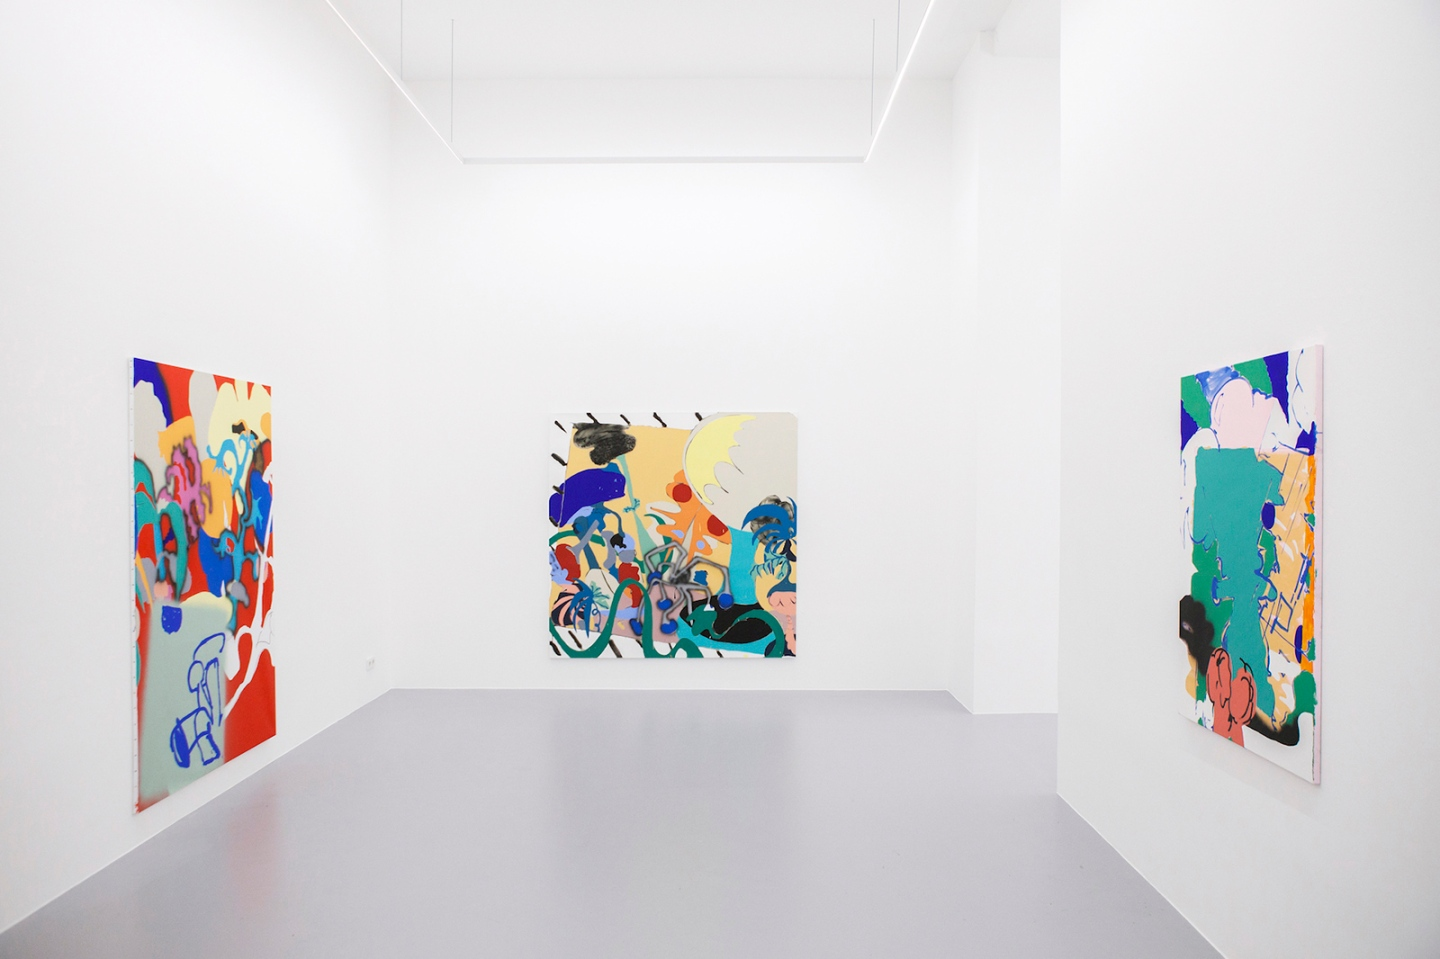 the-fourth-walls-art-exhibition-review-antwan-horfee-sorry-bro-ruttkowski68-gallery-cologne-germany